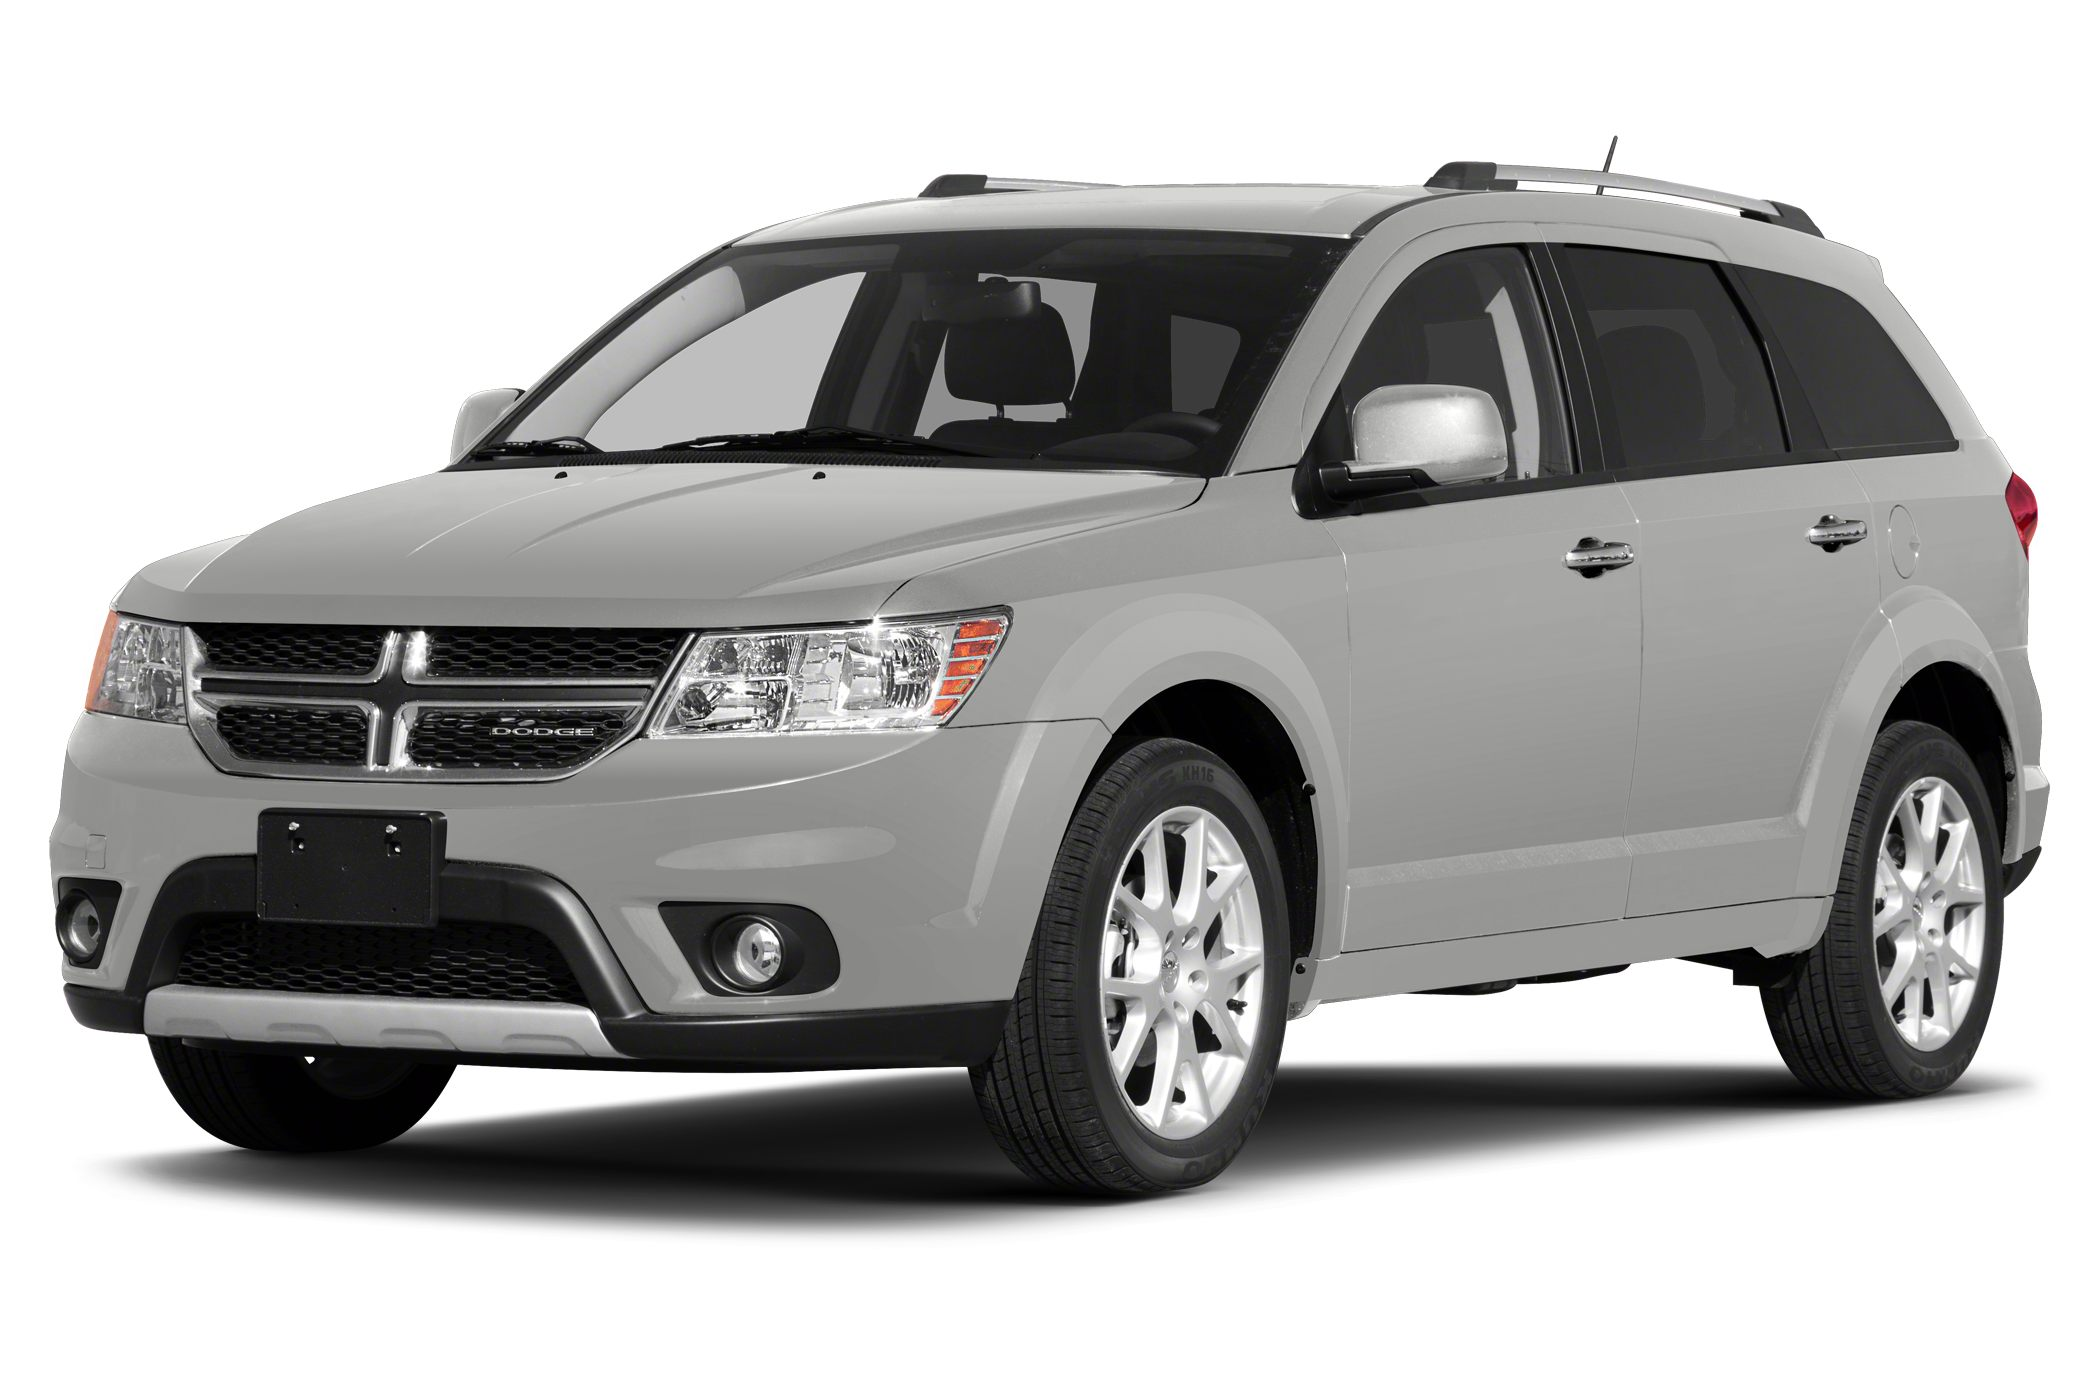 2013 Dodge Journey R/T SUV for sale in Greenfield for $22,990 with 43,136 miles